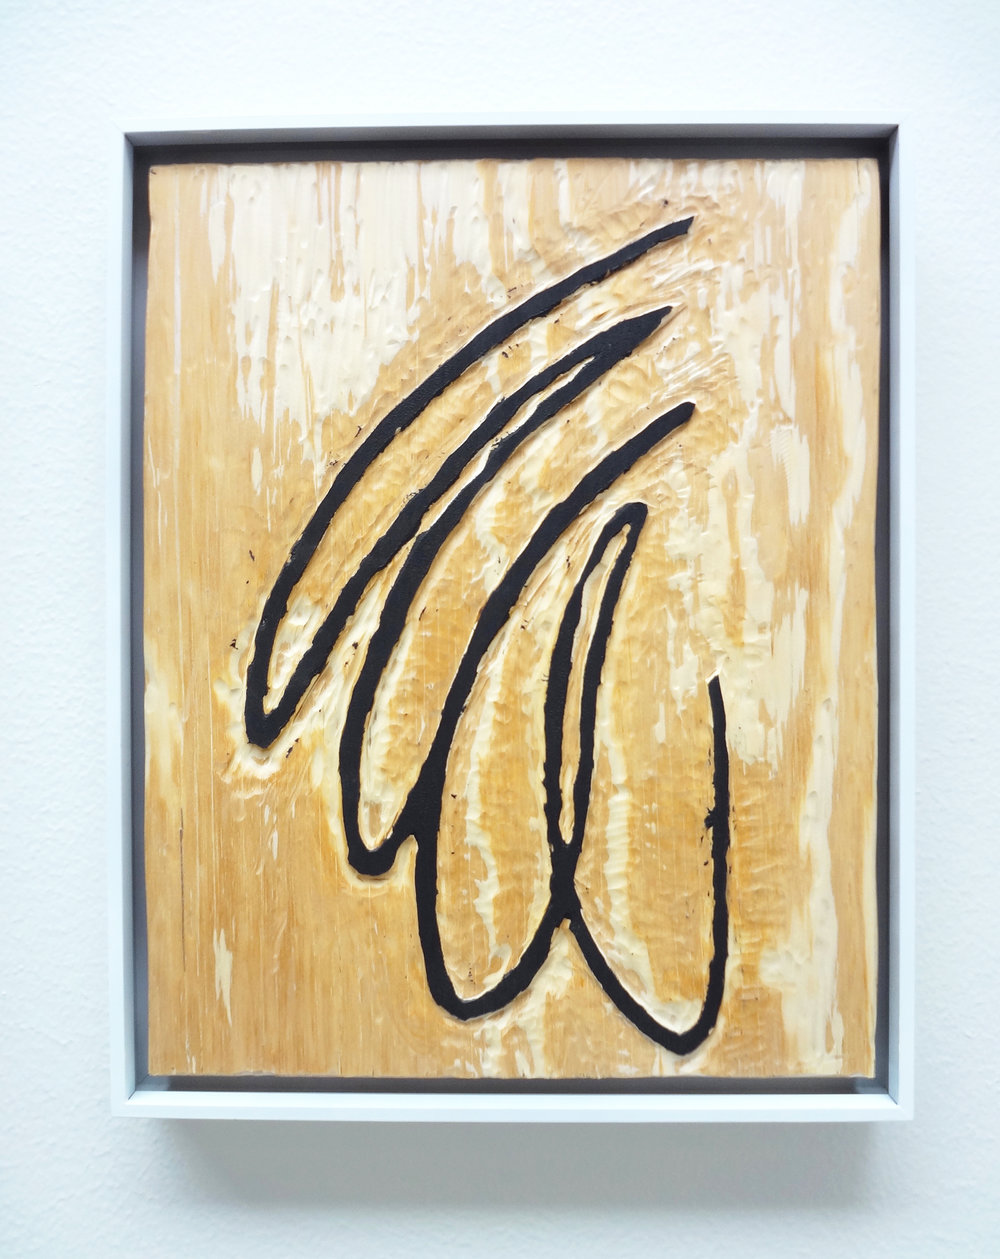 Meghan Gerety  Untitled 10 , 2015 blockprint ink on plywood  15 x 12 in. framed in aluminum